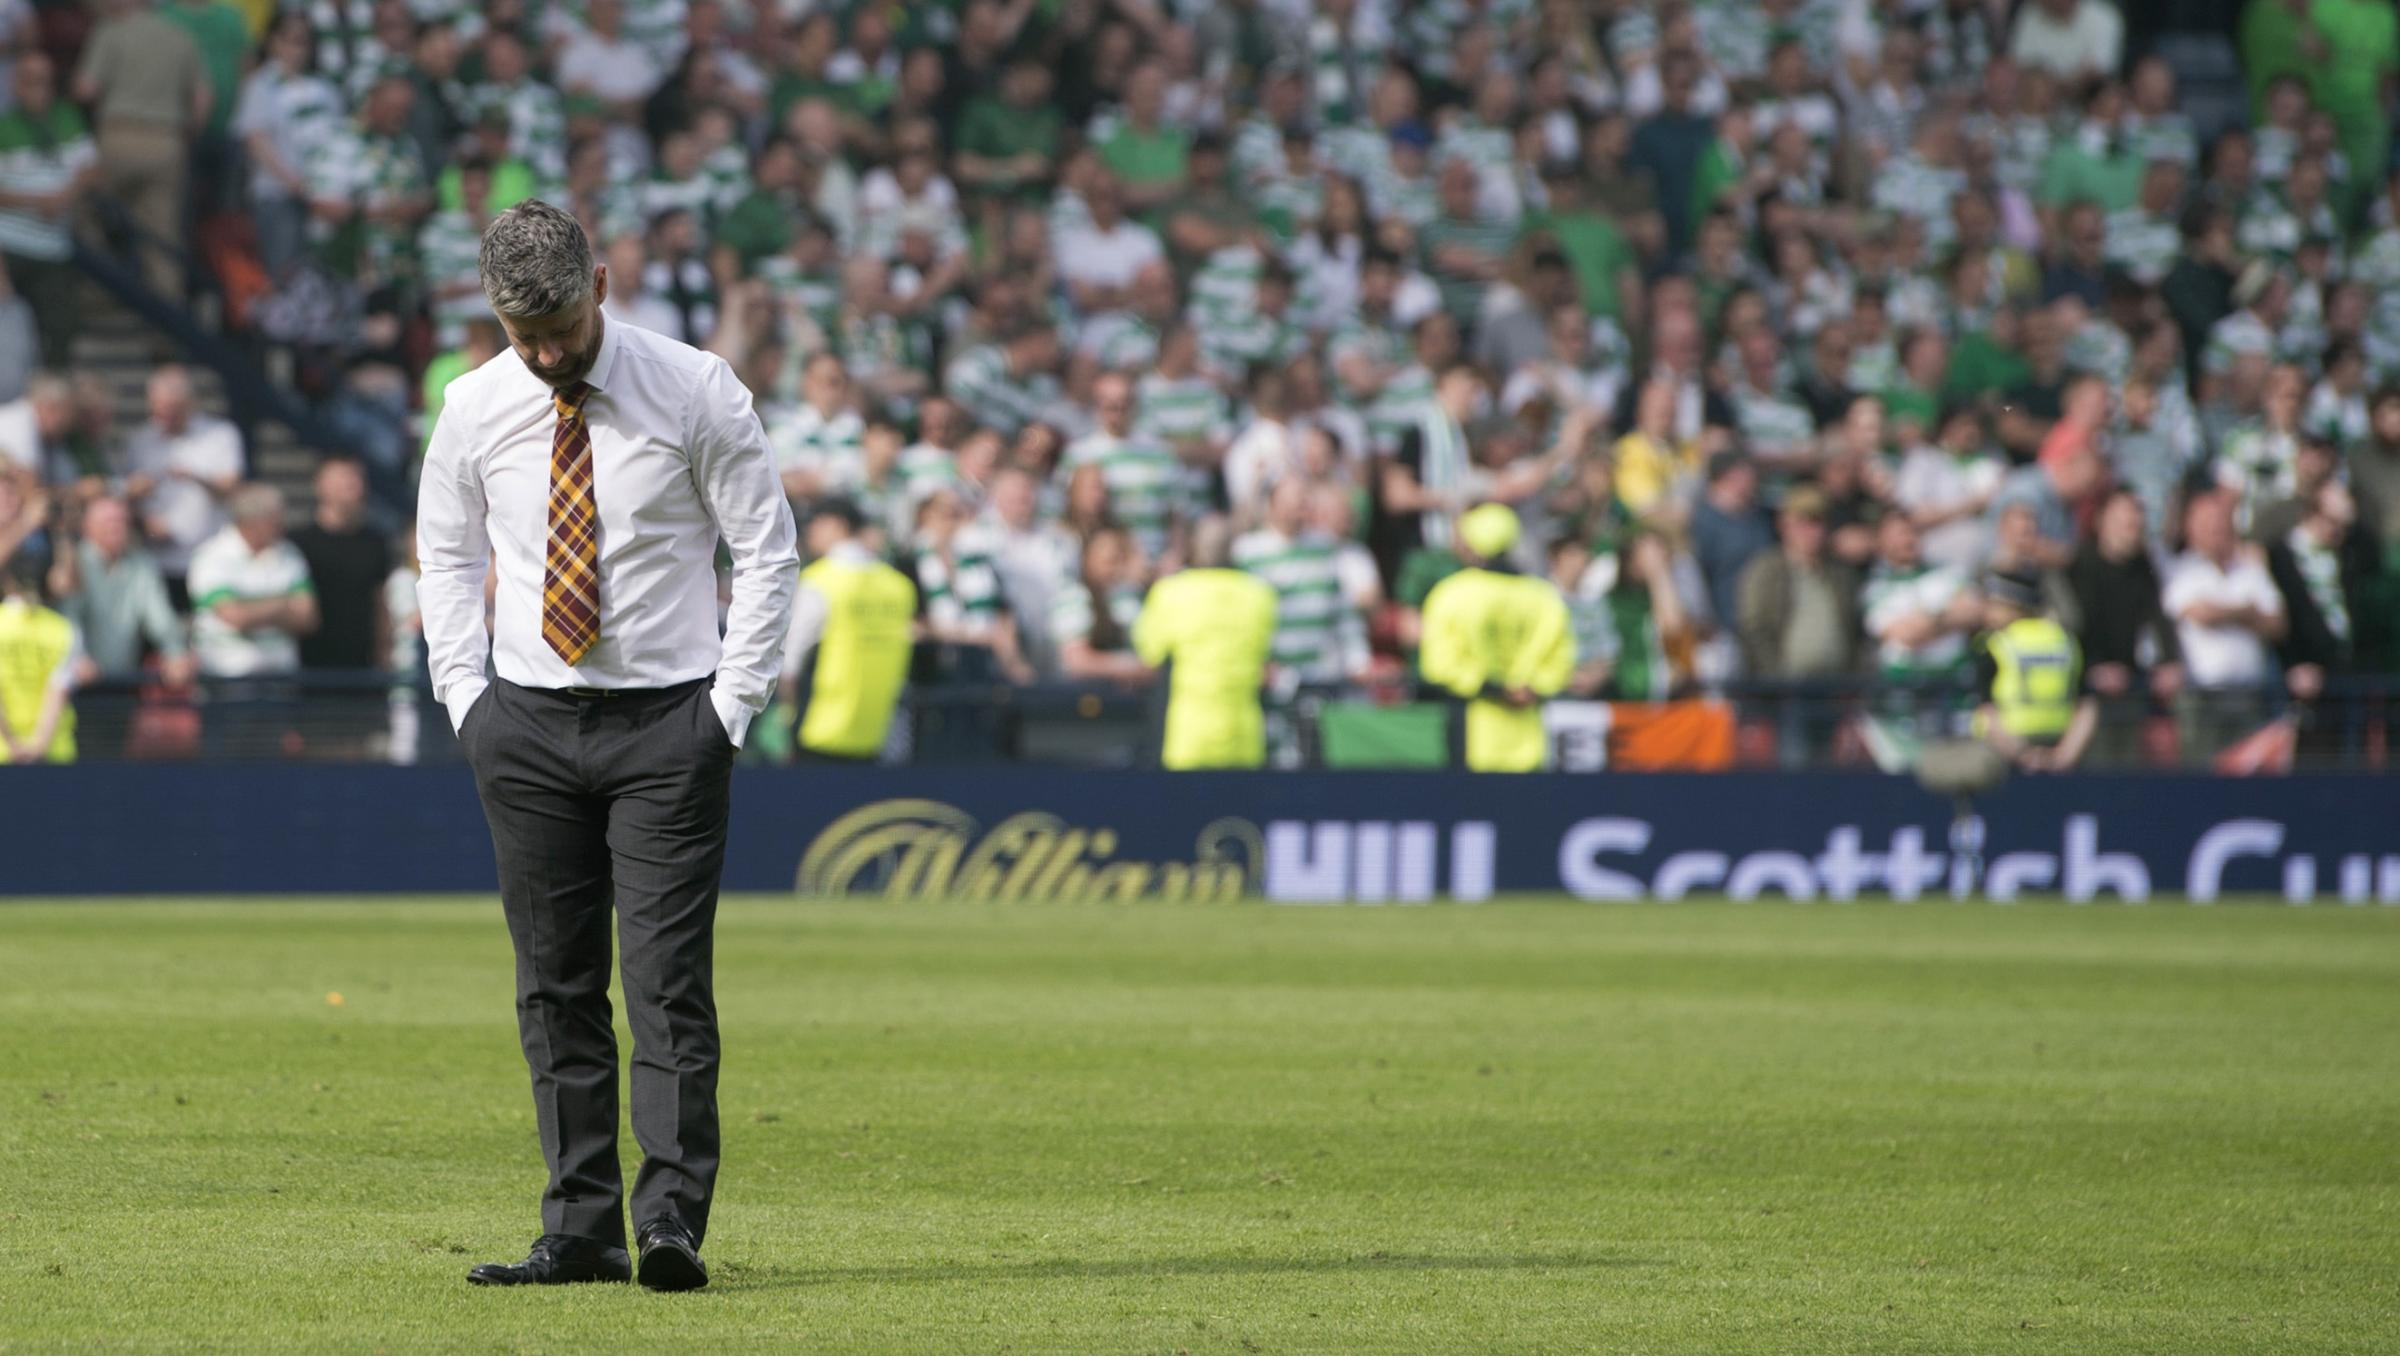 19/05/18 WILLIAM HILL SCOTTISH CUP FINAL. MOTHERWELL v CELTIC. HAMPDEN PARK - GLASGOW . Dejection for Motherwell manager Stephen Robinson at full time.